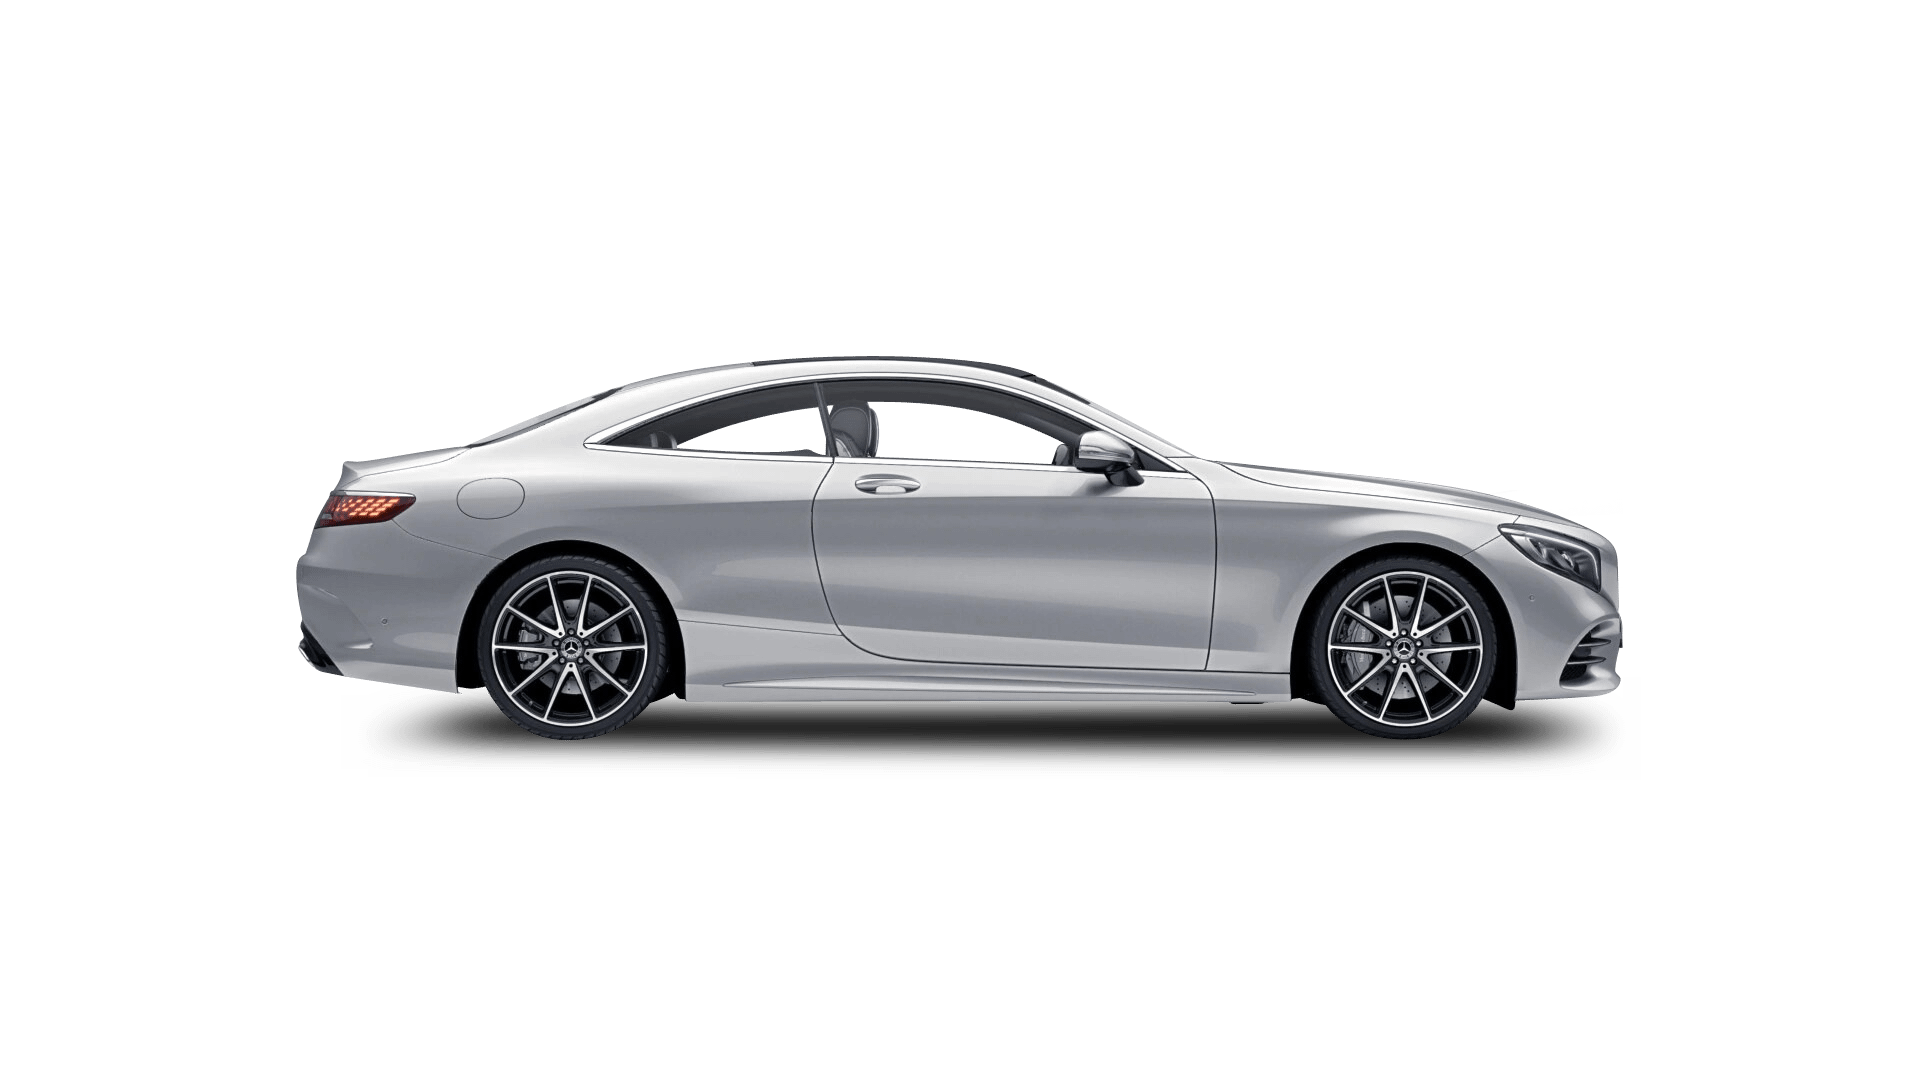 https://bluesky-cogcms.cdn.imgeng.in/media/35339/s-class-coupe-grand-edition.png